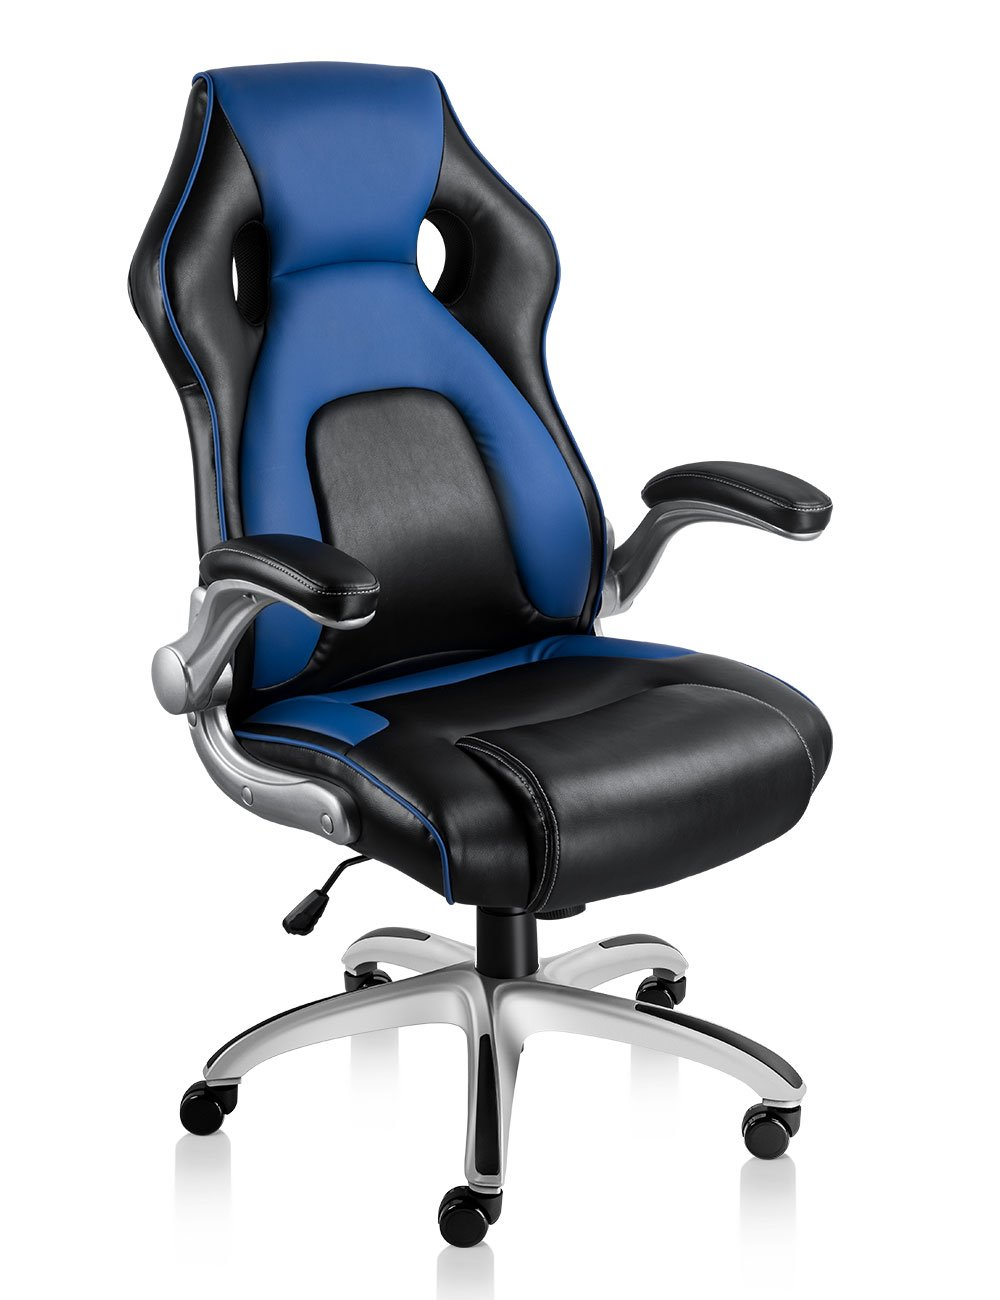 NKV High Back Gaming Chair Racing Style Office Chair Ergonomic Computer Video Game Chair Heavy Duty PC Adjustable Swivel Desk Chair Bonded Leather (Black/Blue) …